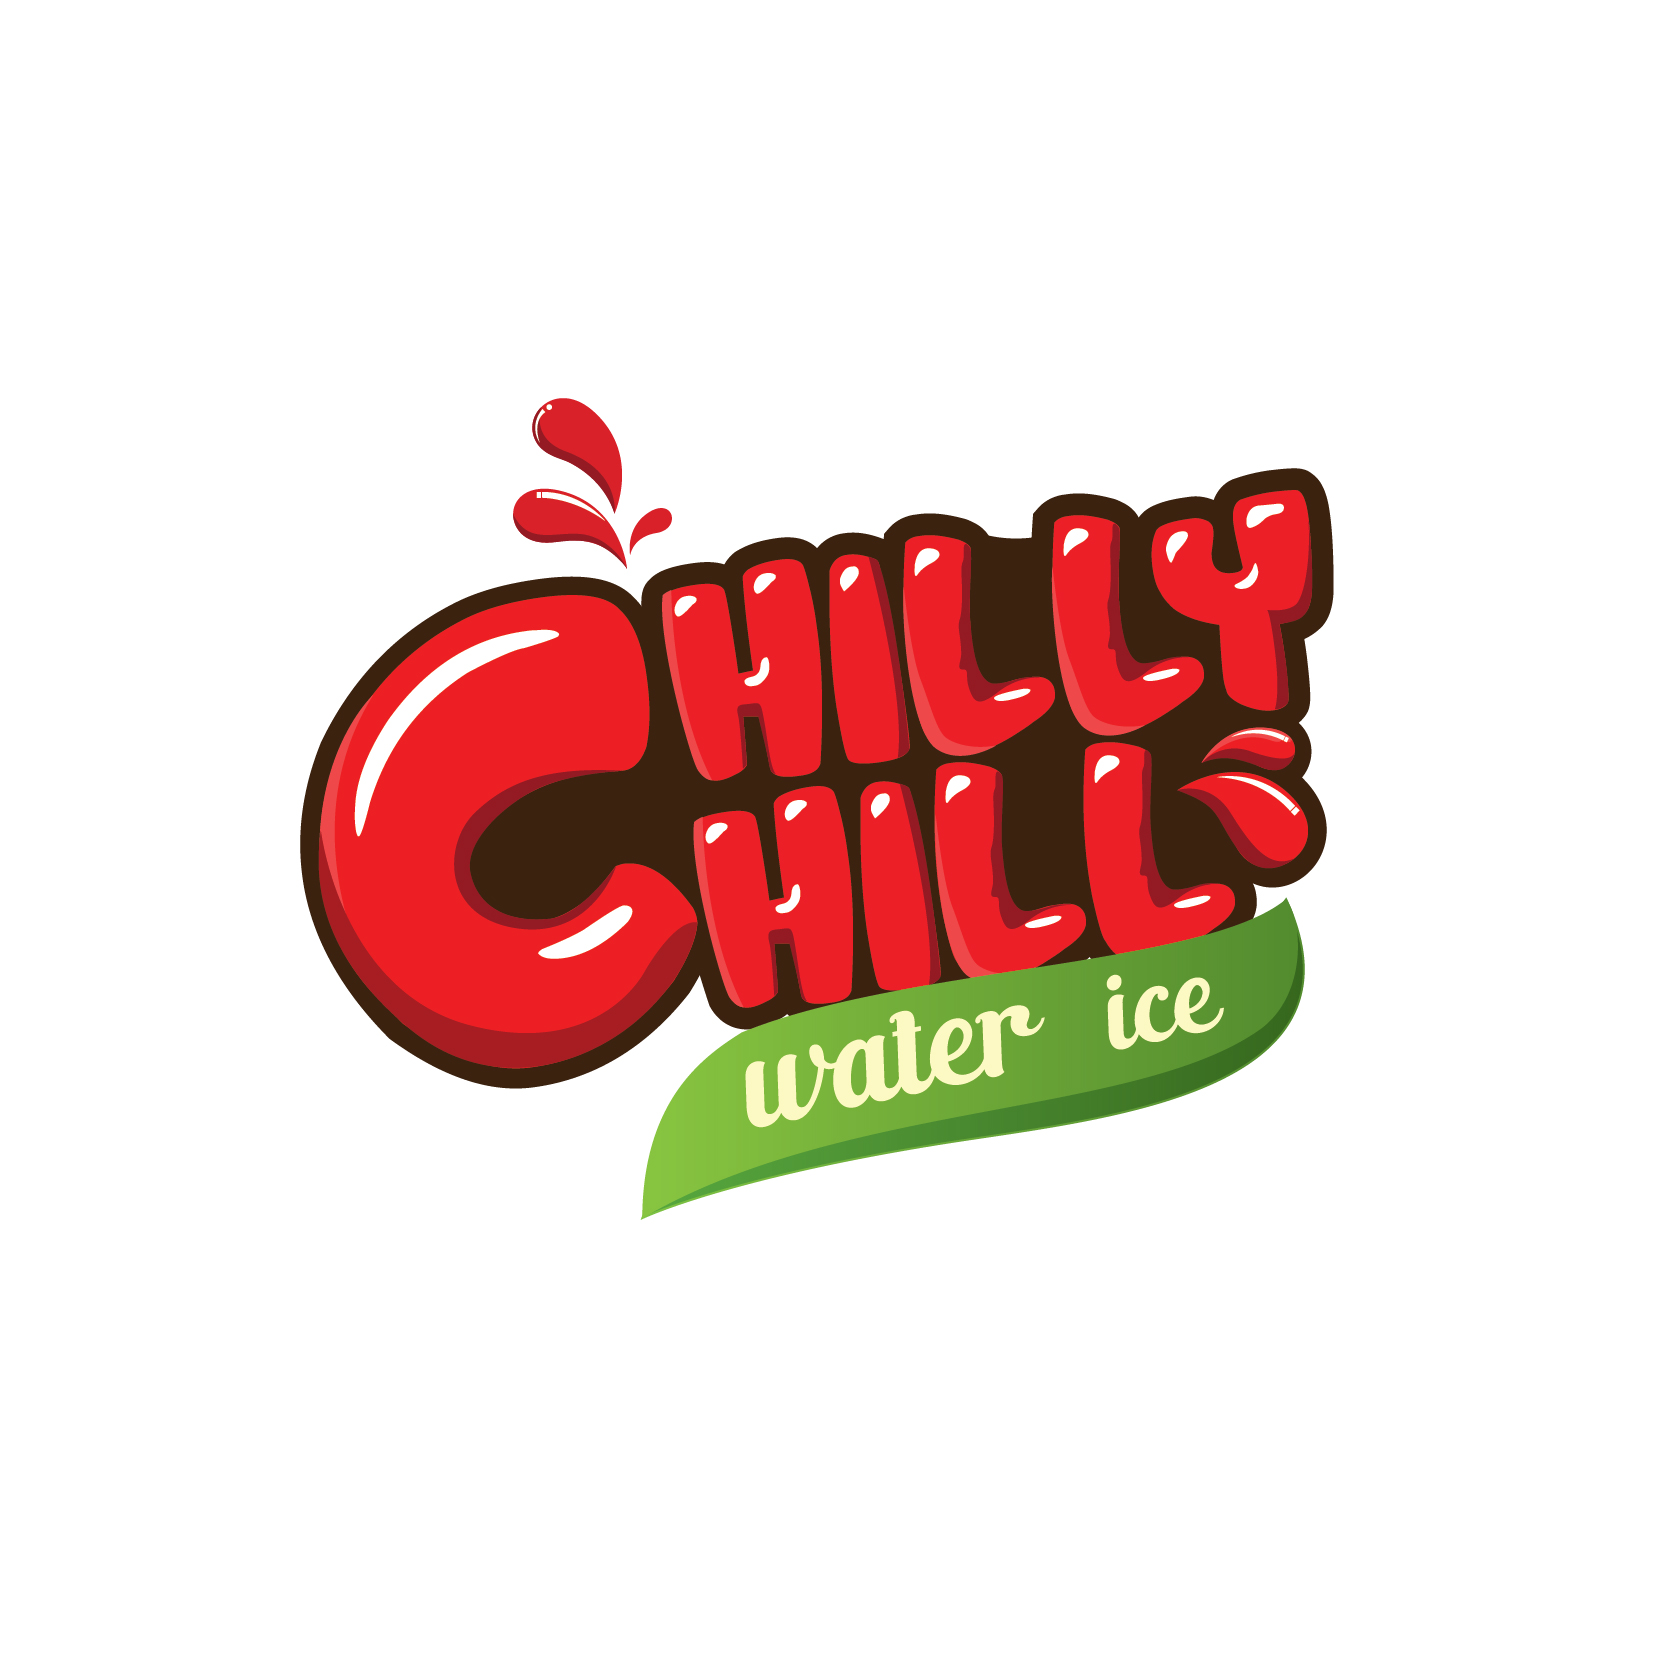 Chillychill water ice